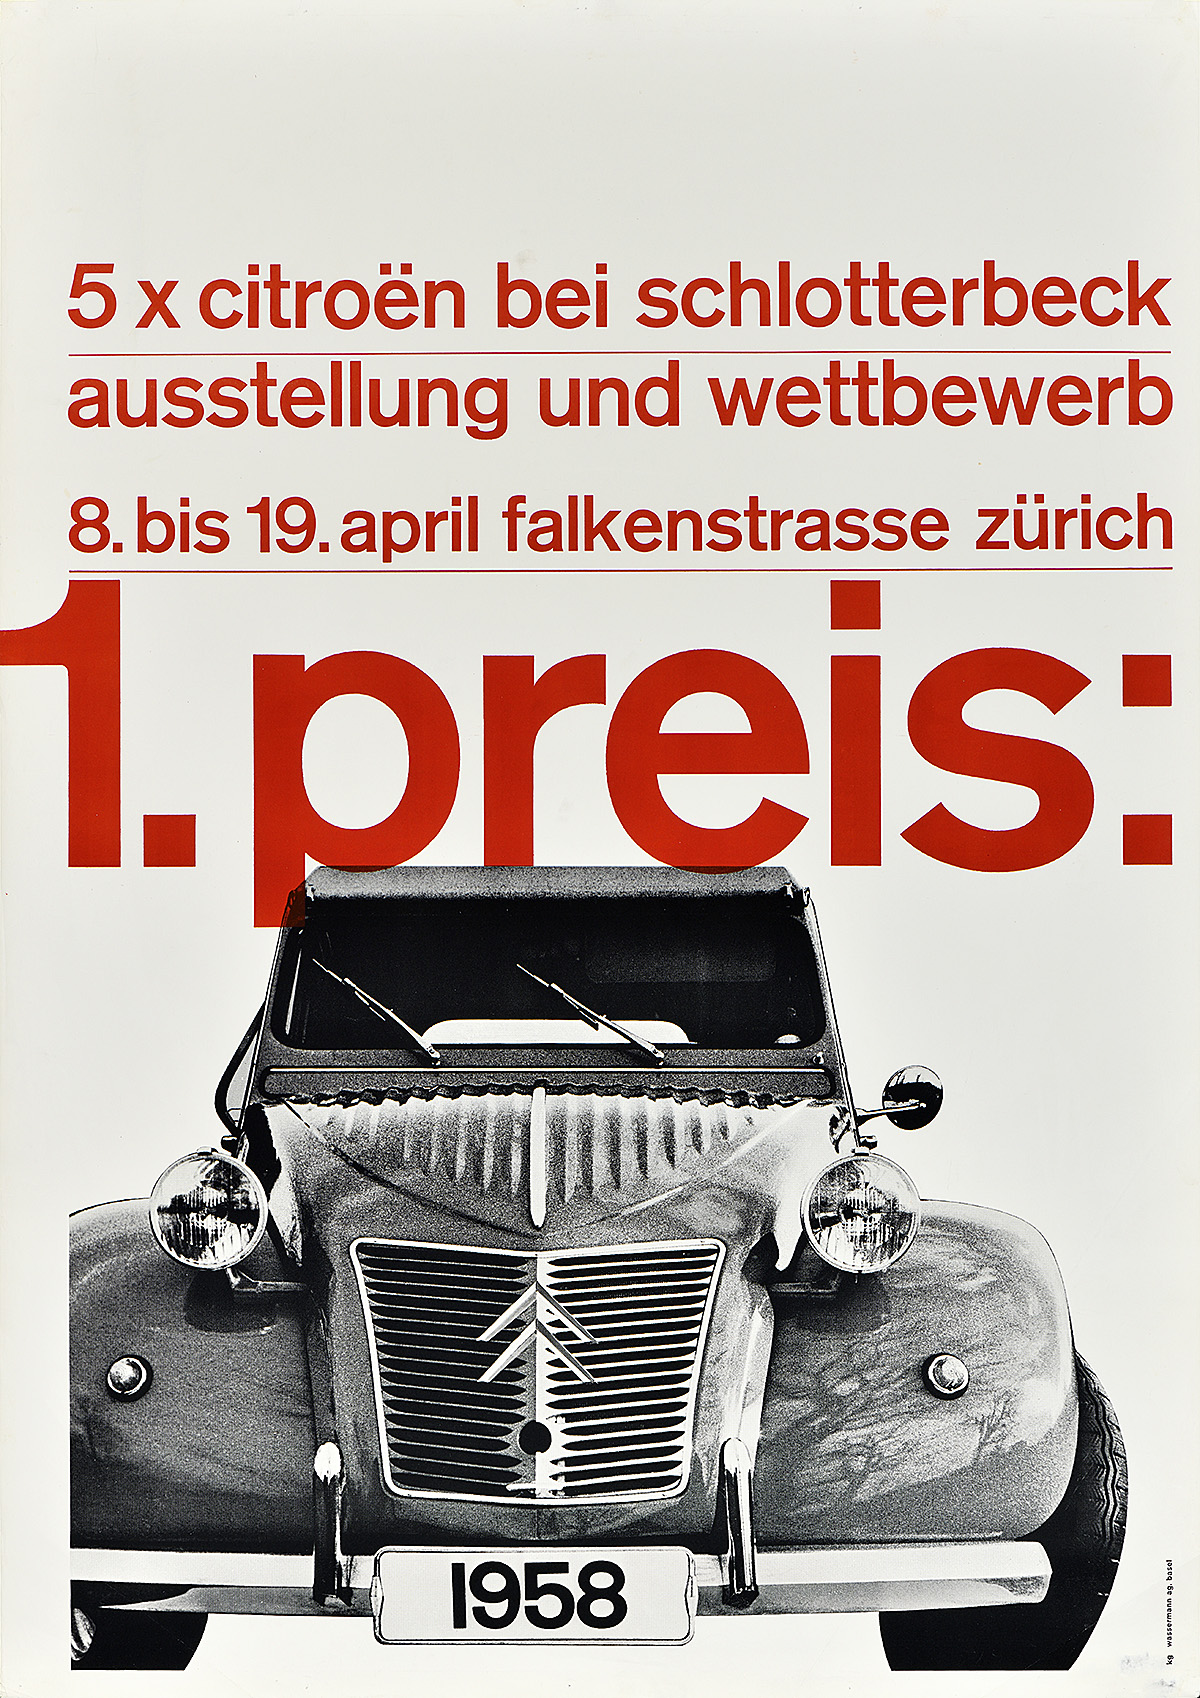 poster of a black and white image of a car and red text on a white background